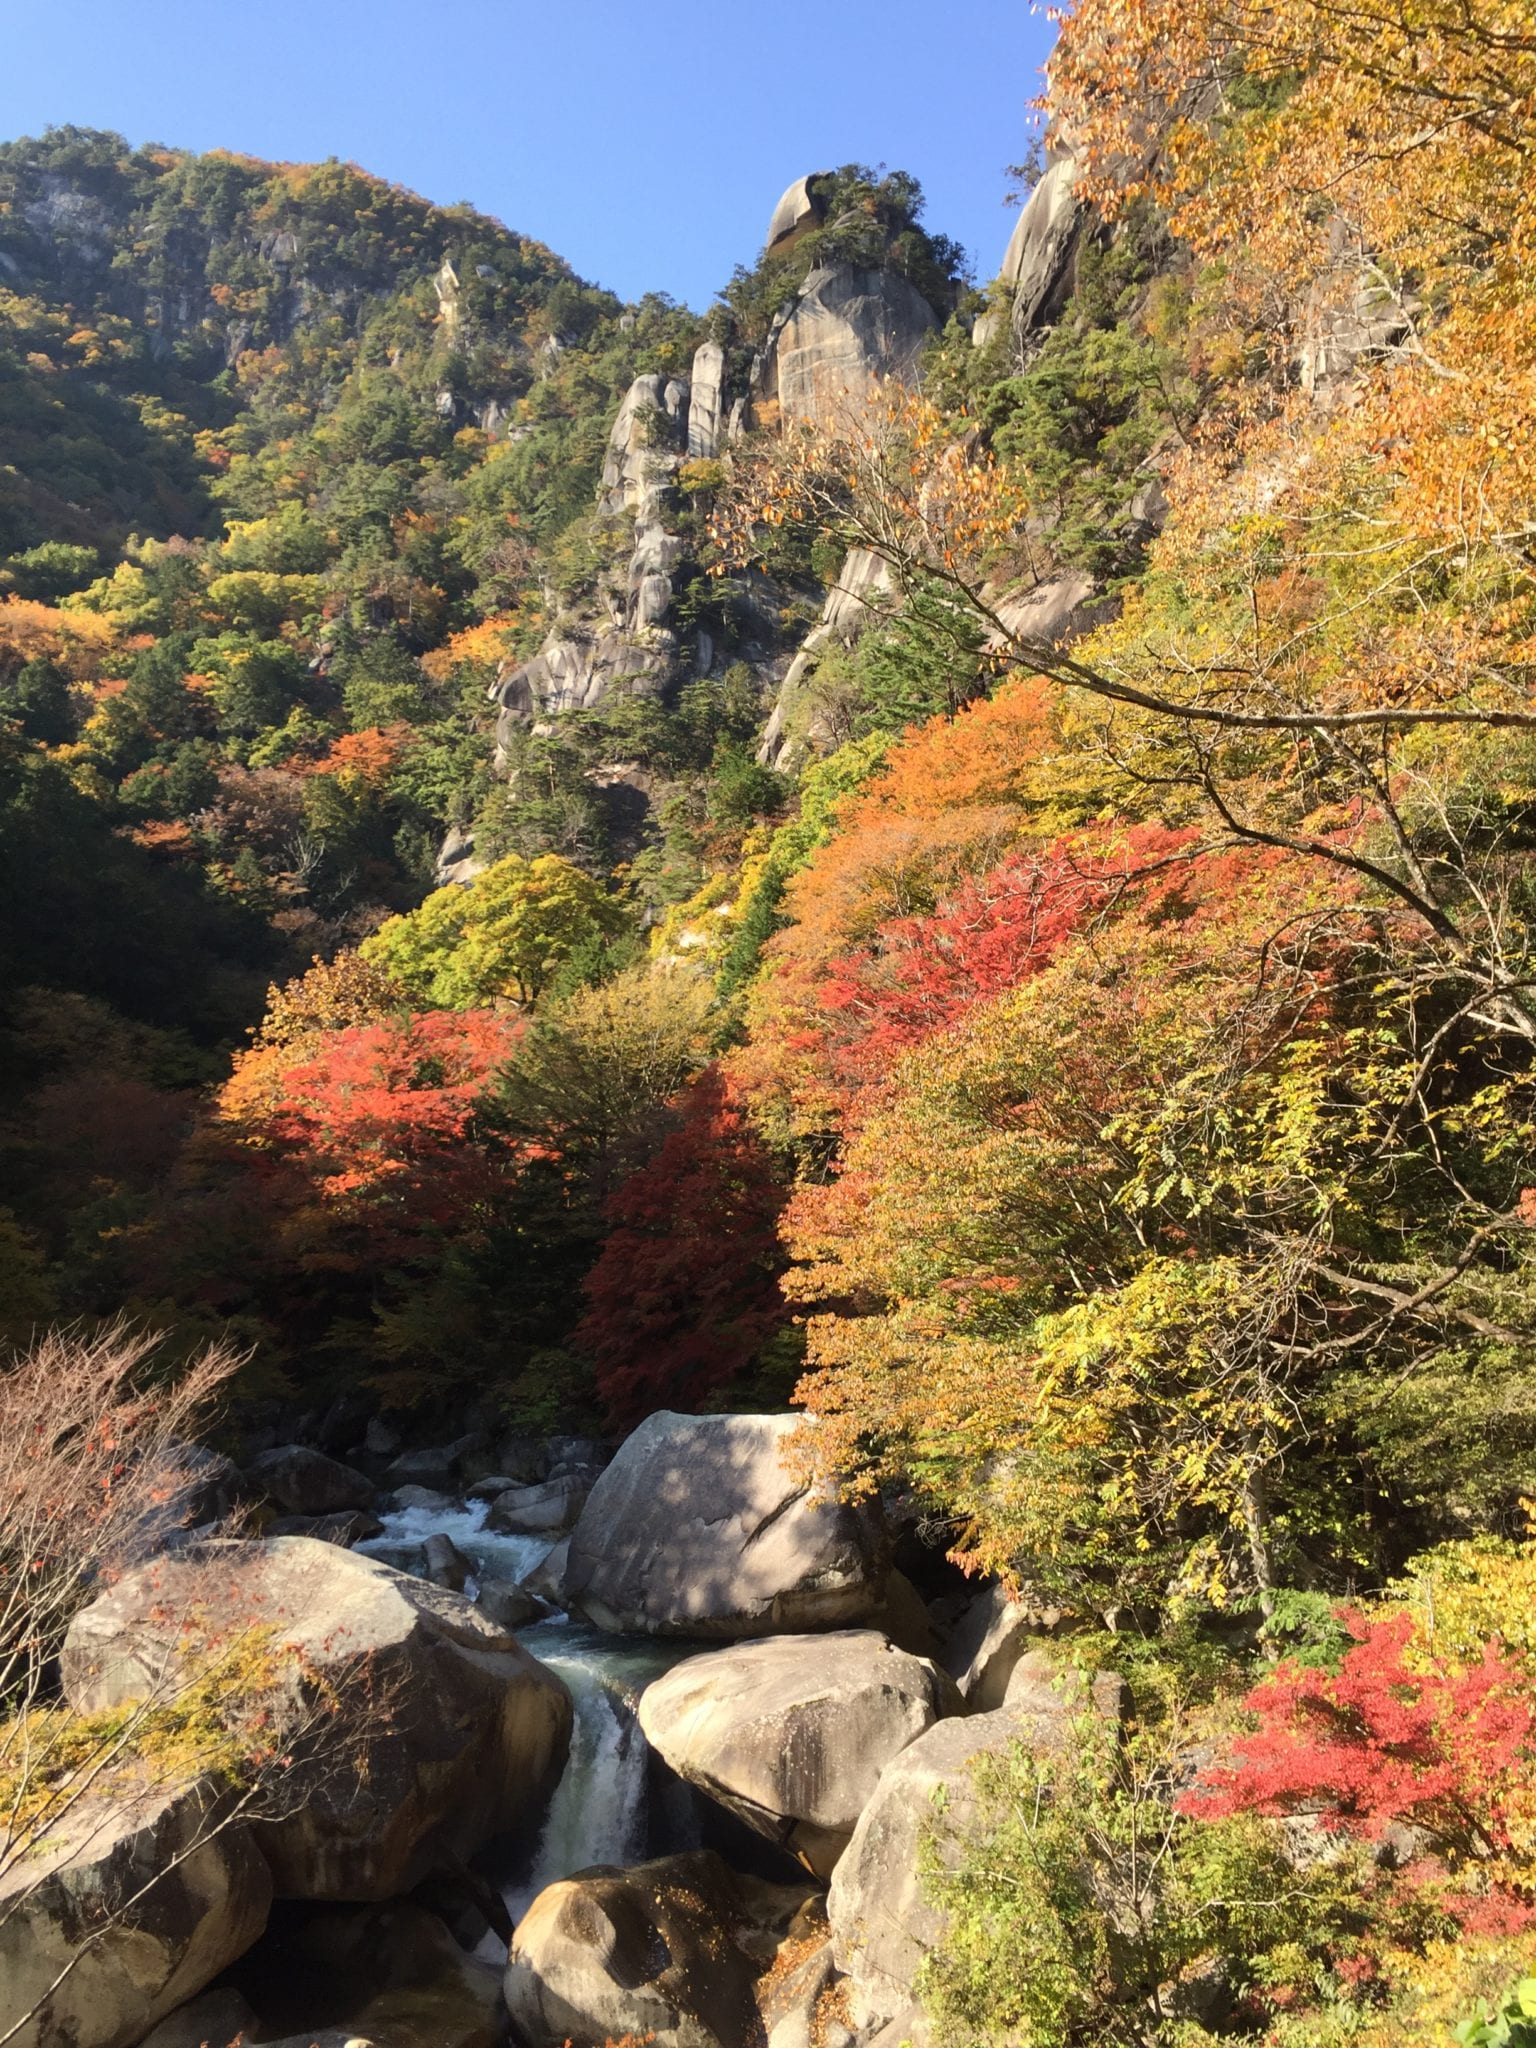 Fall foliage in Shosenkyo Gorge.